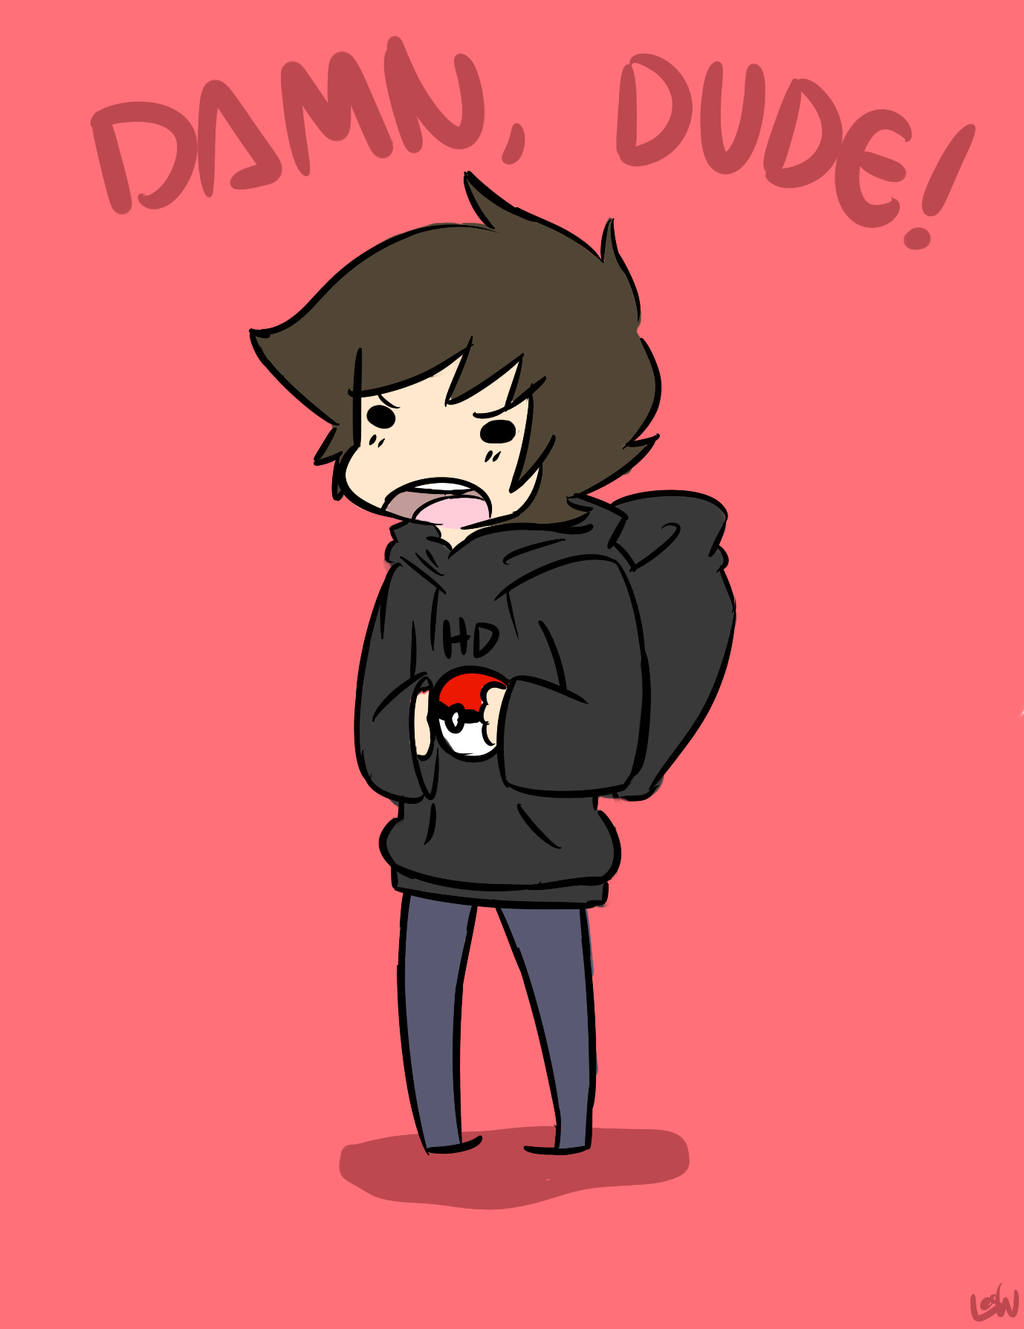 Drawn quoth ImmortalHD LeoMakesDoodles by Quoth by